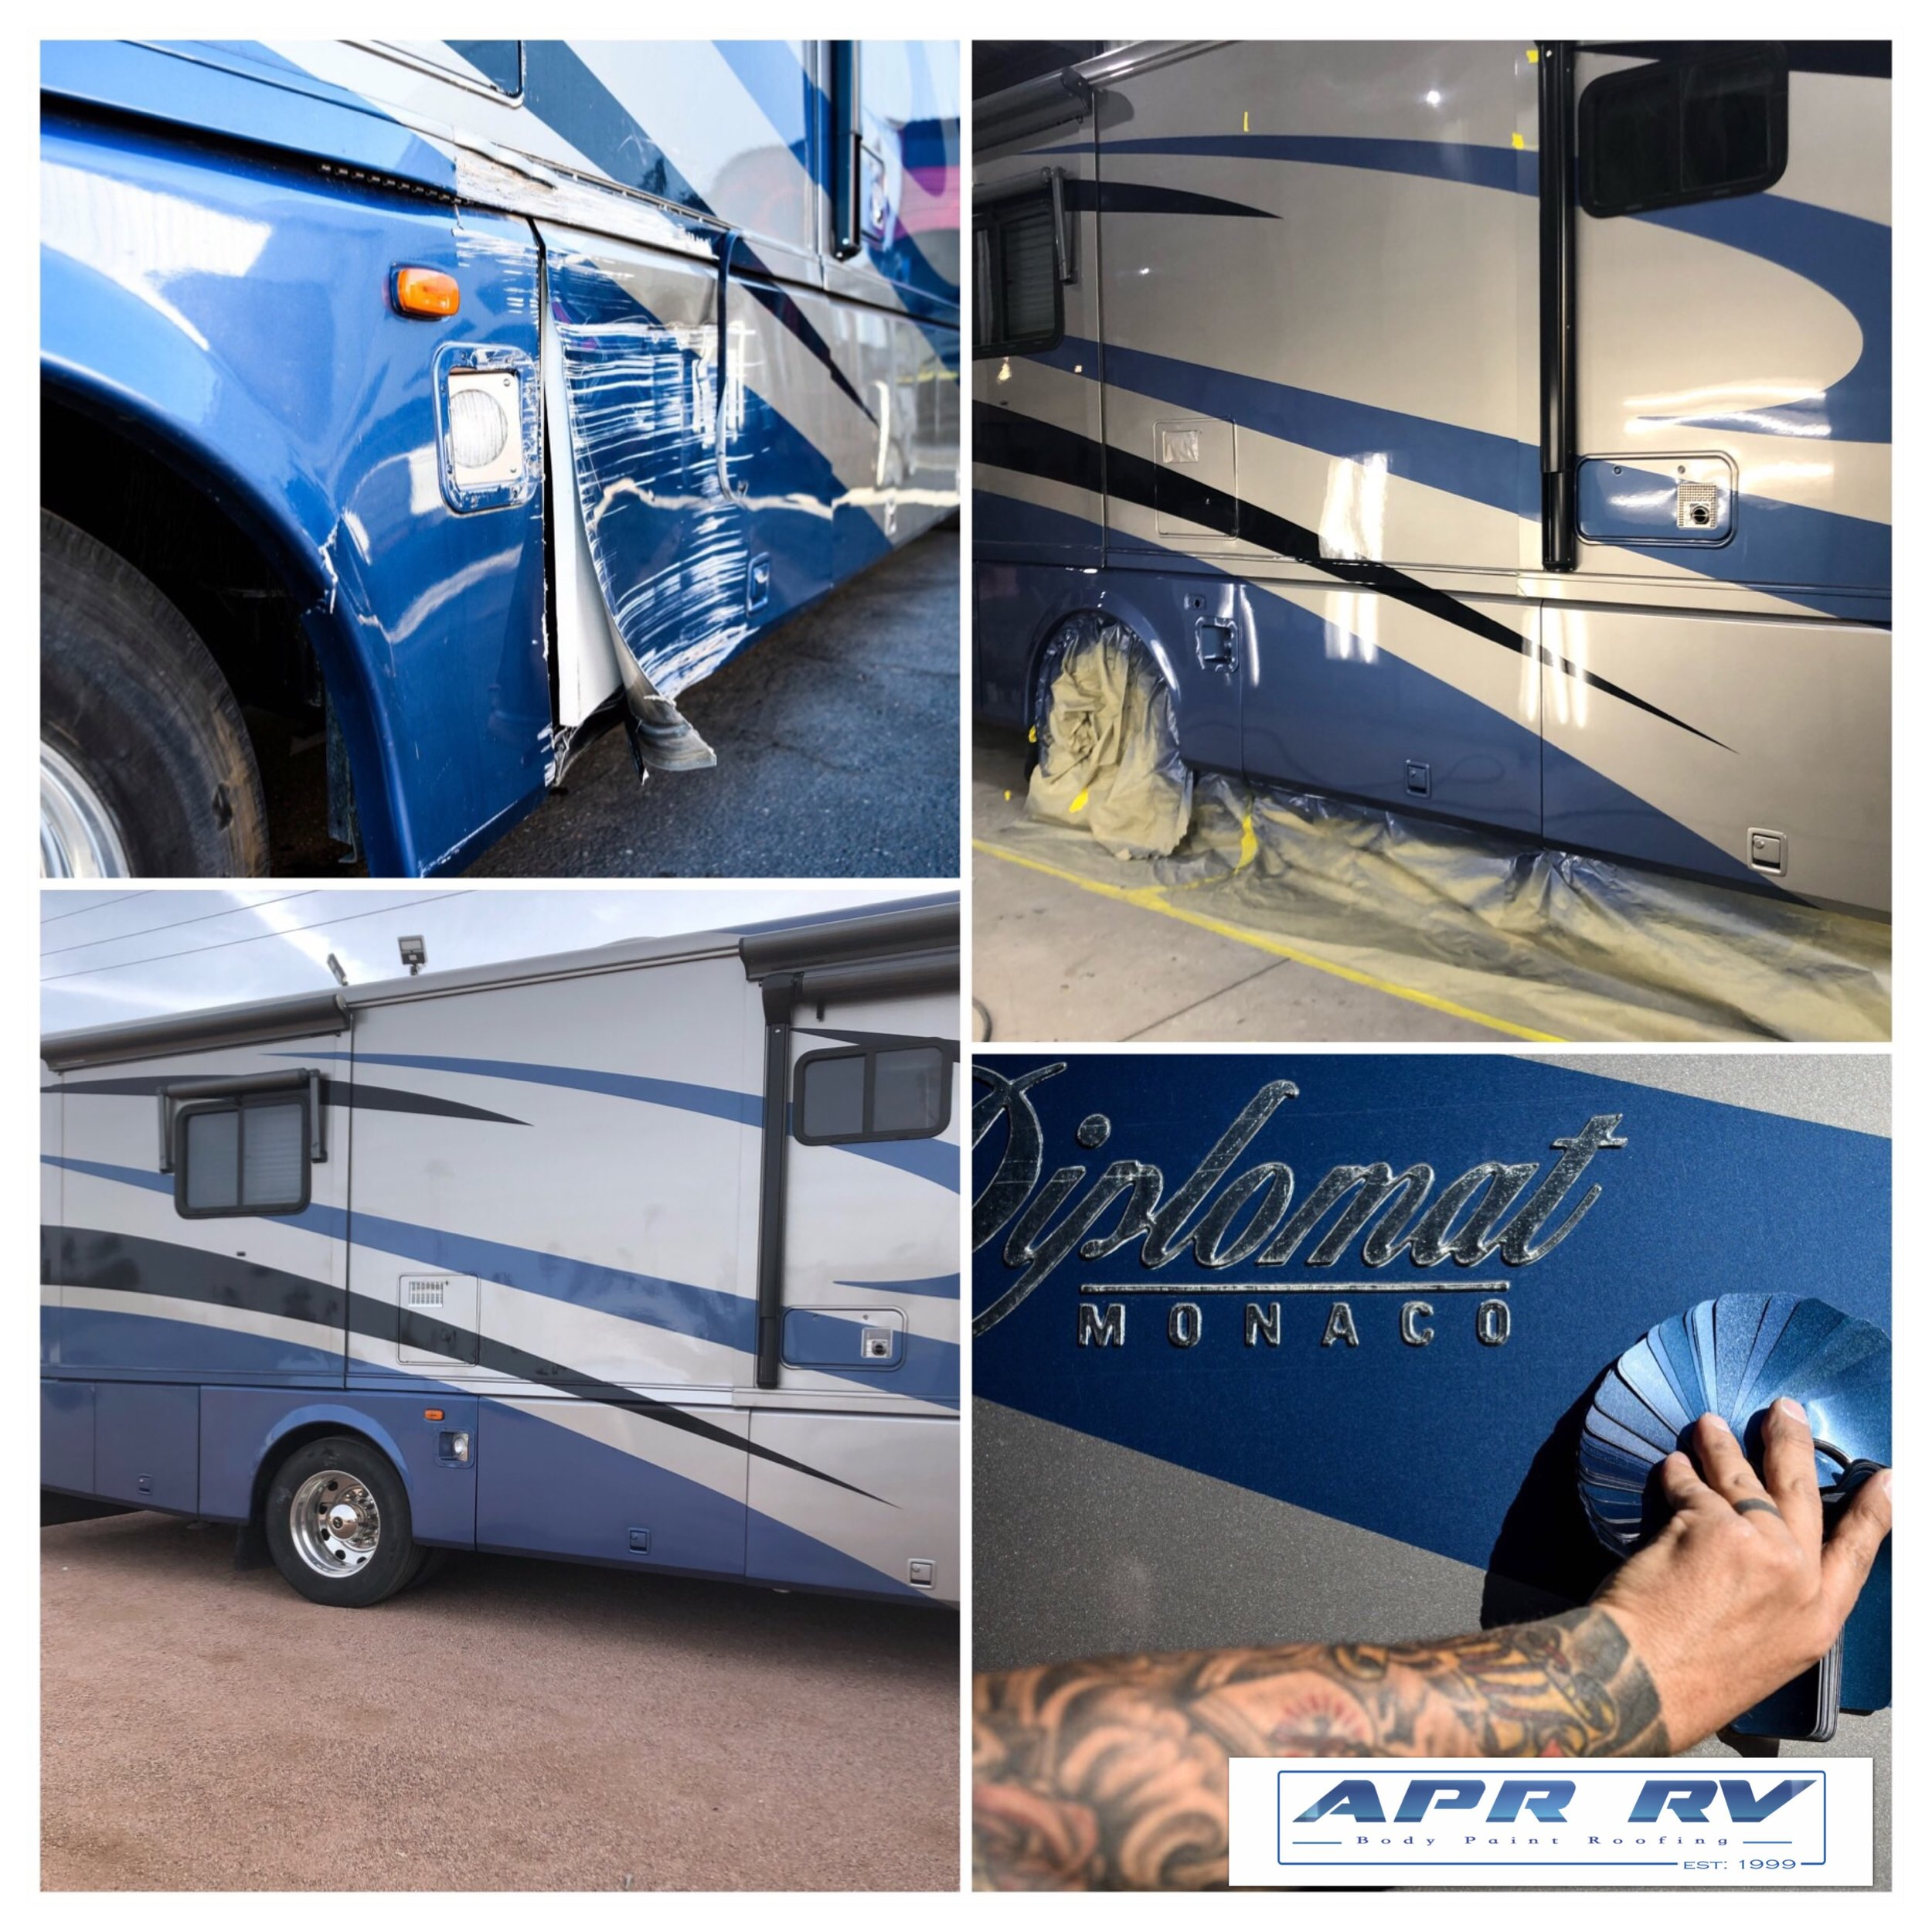 Top Quality products expert workmanship and Caring Staff - is hard to find these days, but thats exactly what you will find here at APR RV™ just the way Dad did it,